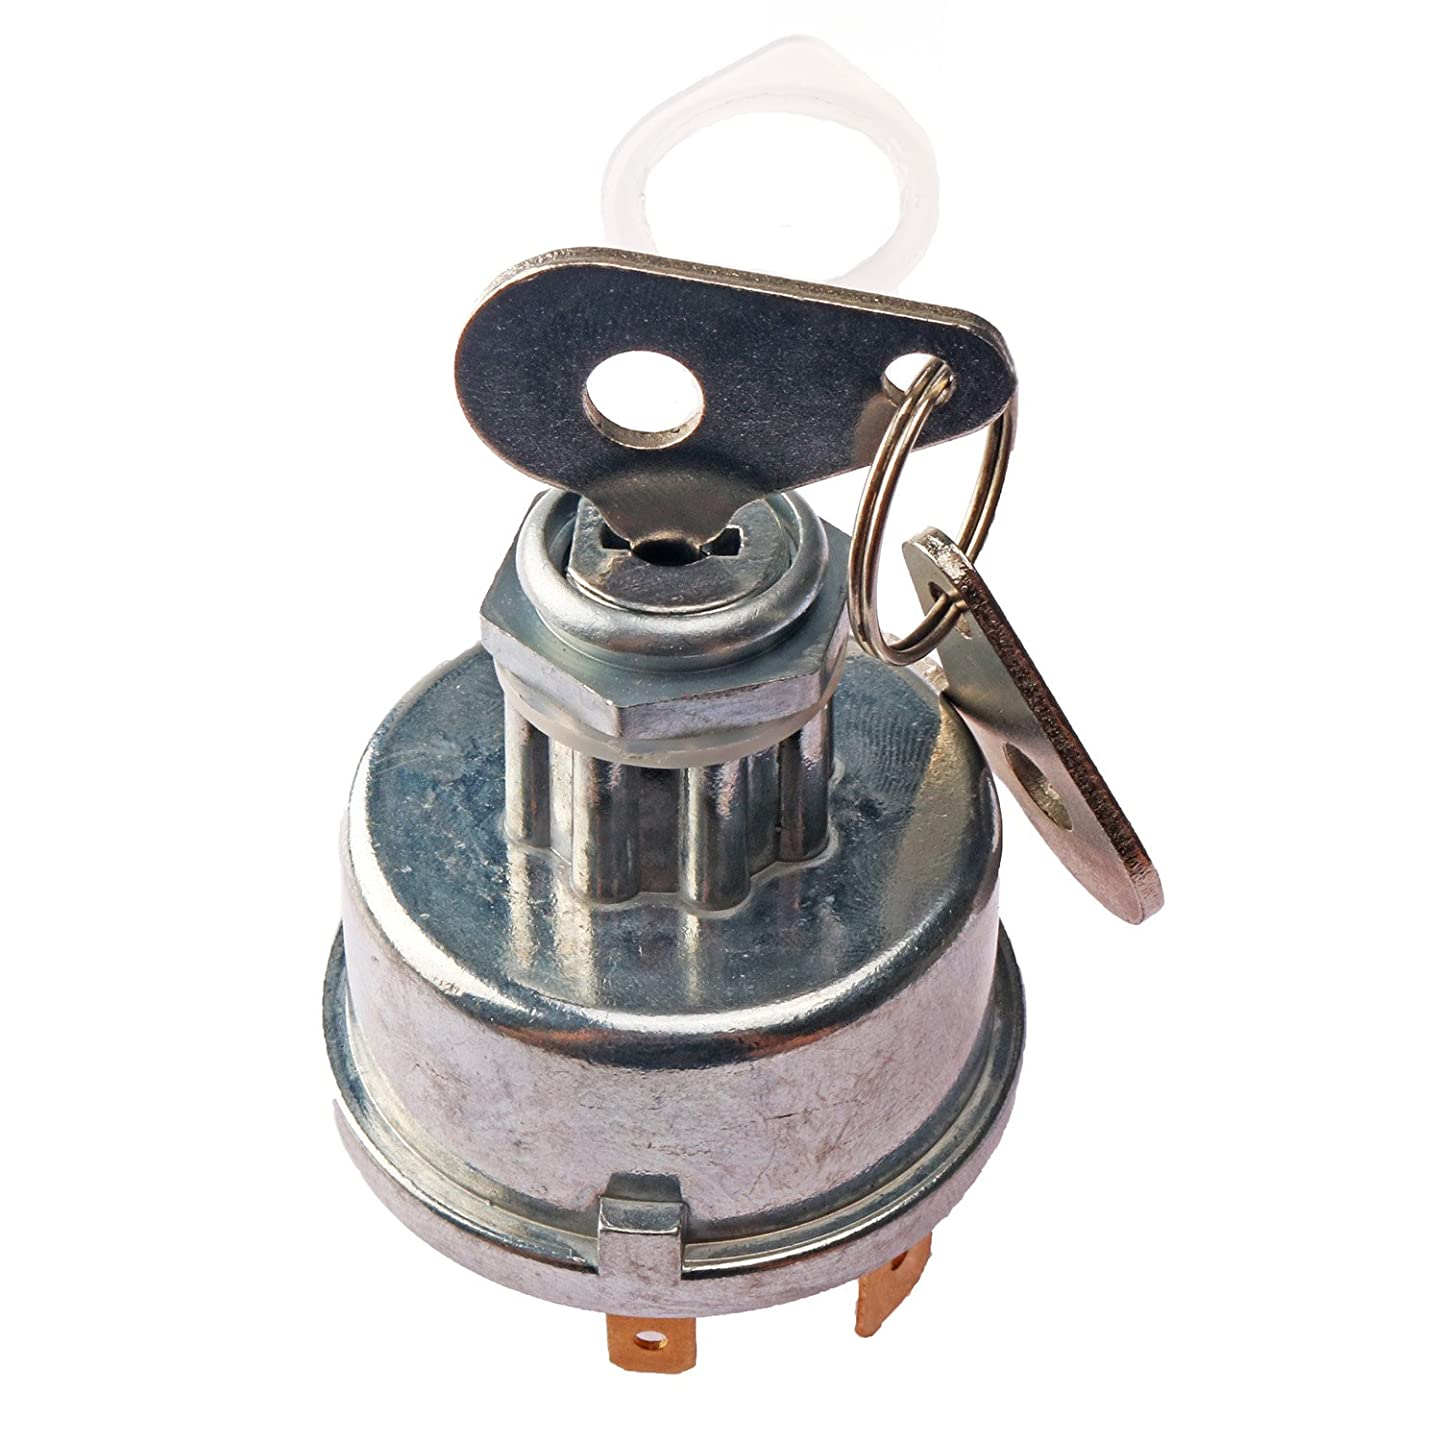 Mover Parts Ignition Switch 1874535M3 for Massey Ferguson 230 235 240 243 245 250 253 255 263 275 282 290 298 360 8110 8120 8130 8140 8150 8160 8170 8180 8210 8220